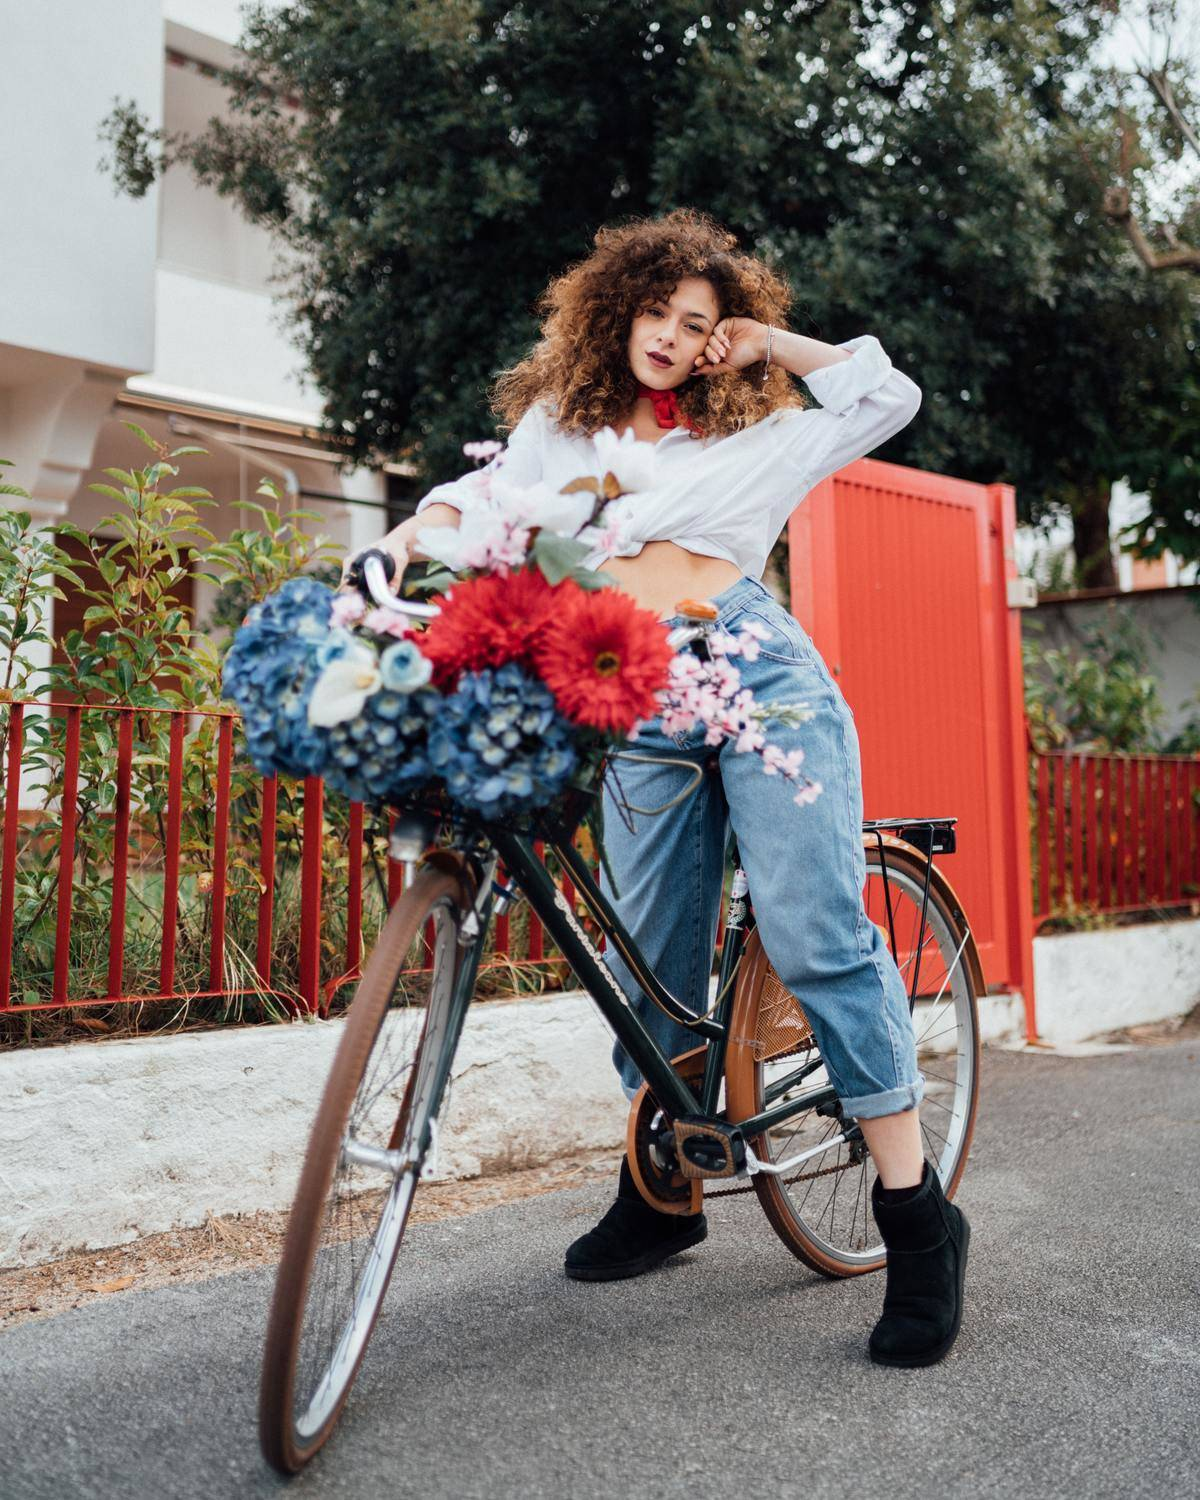 woman riding a bike with a bunch of flowers on it